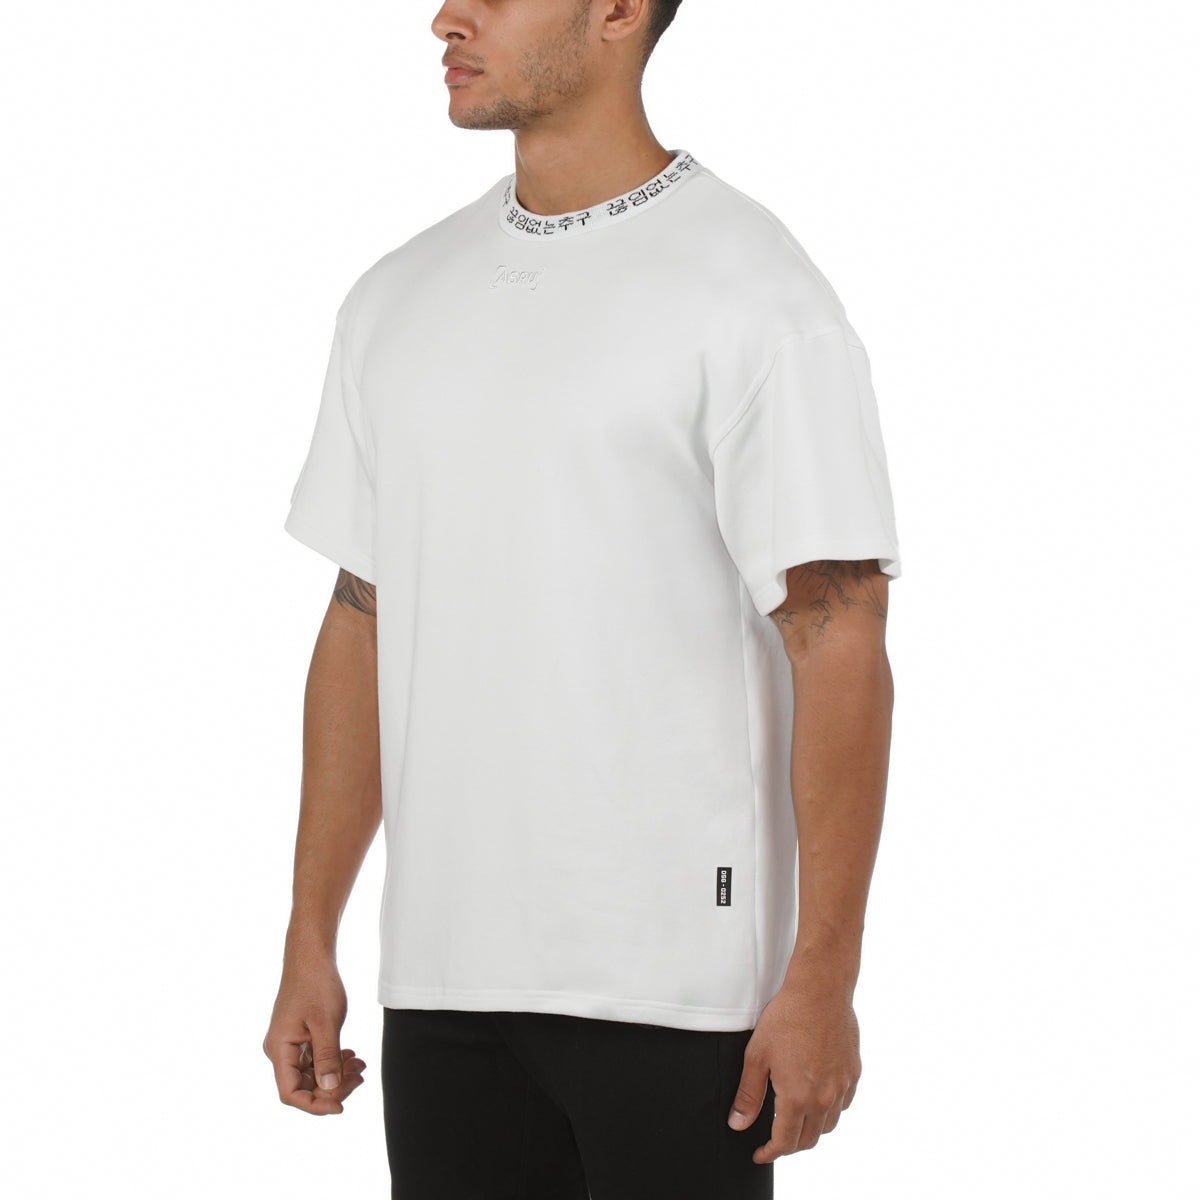 0252. SilverPlus® Technical Cinch Tee - White